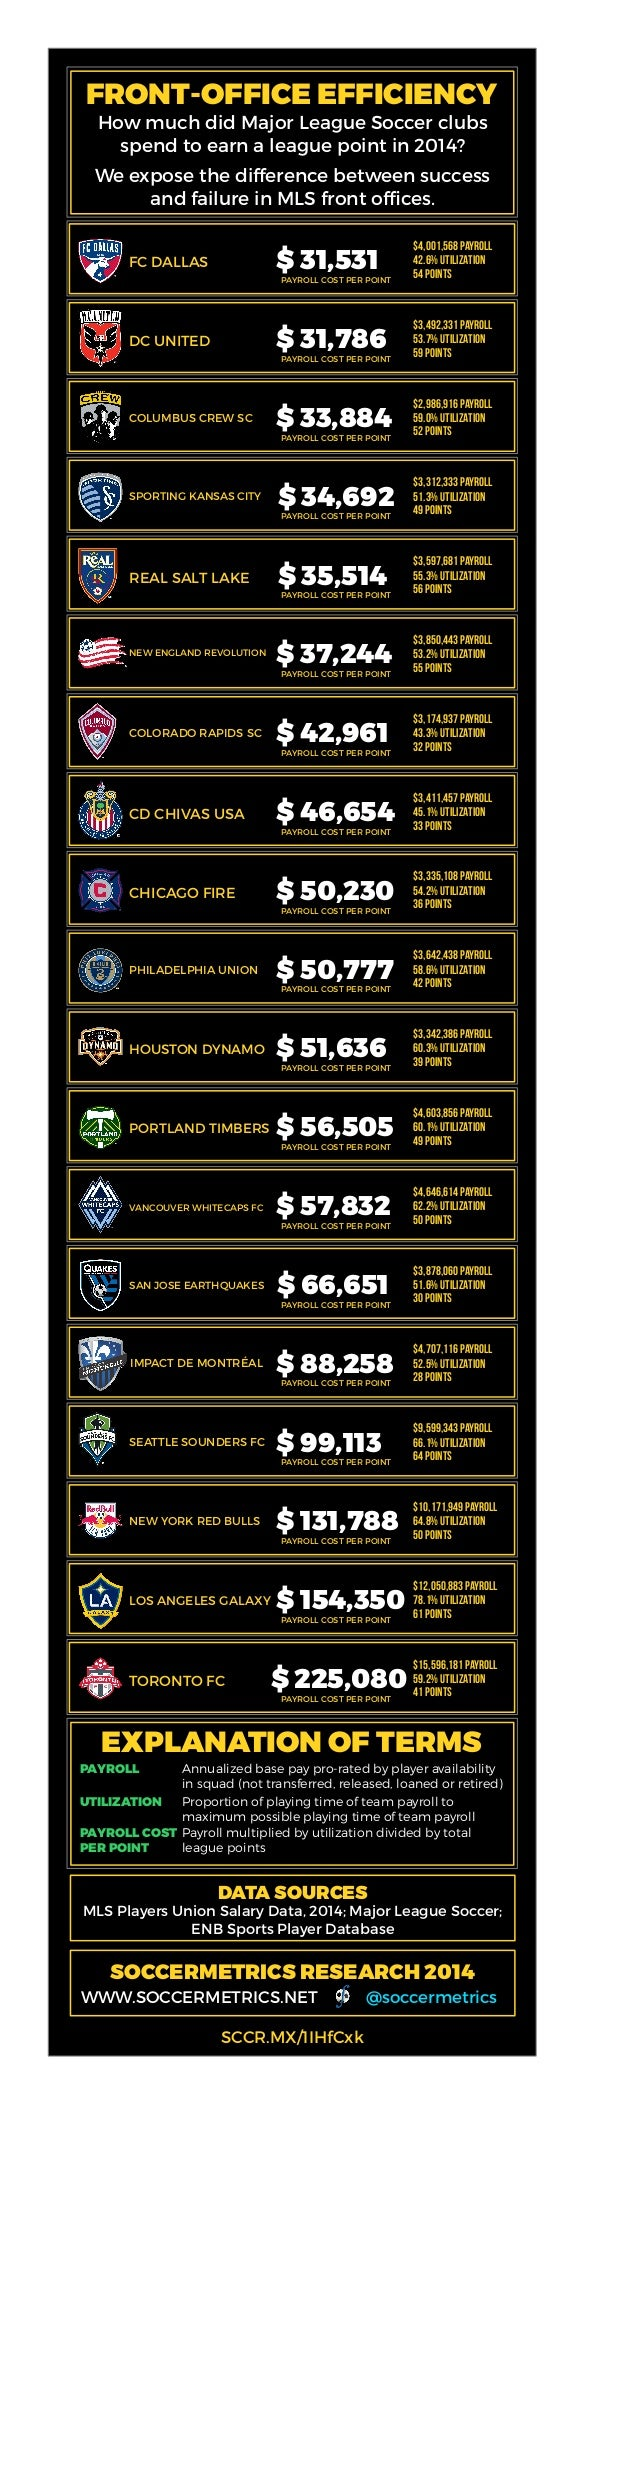 FRONT-OFFICE EFFICIENCY How much did Major League Soccer clubs spend to earn a league point in 2014? We expose the differe...